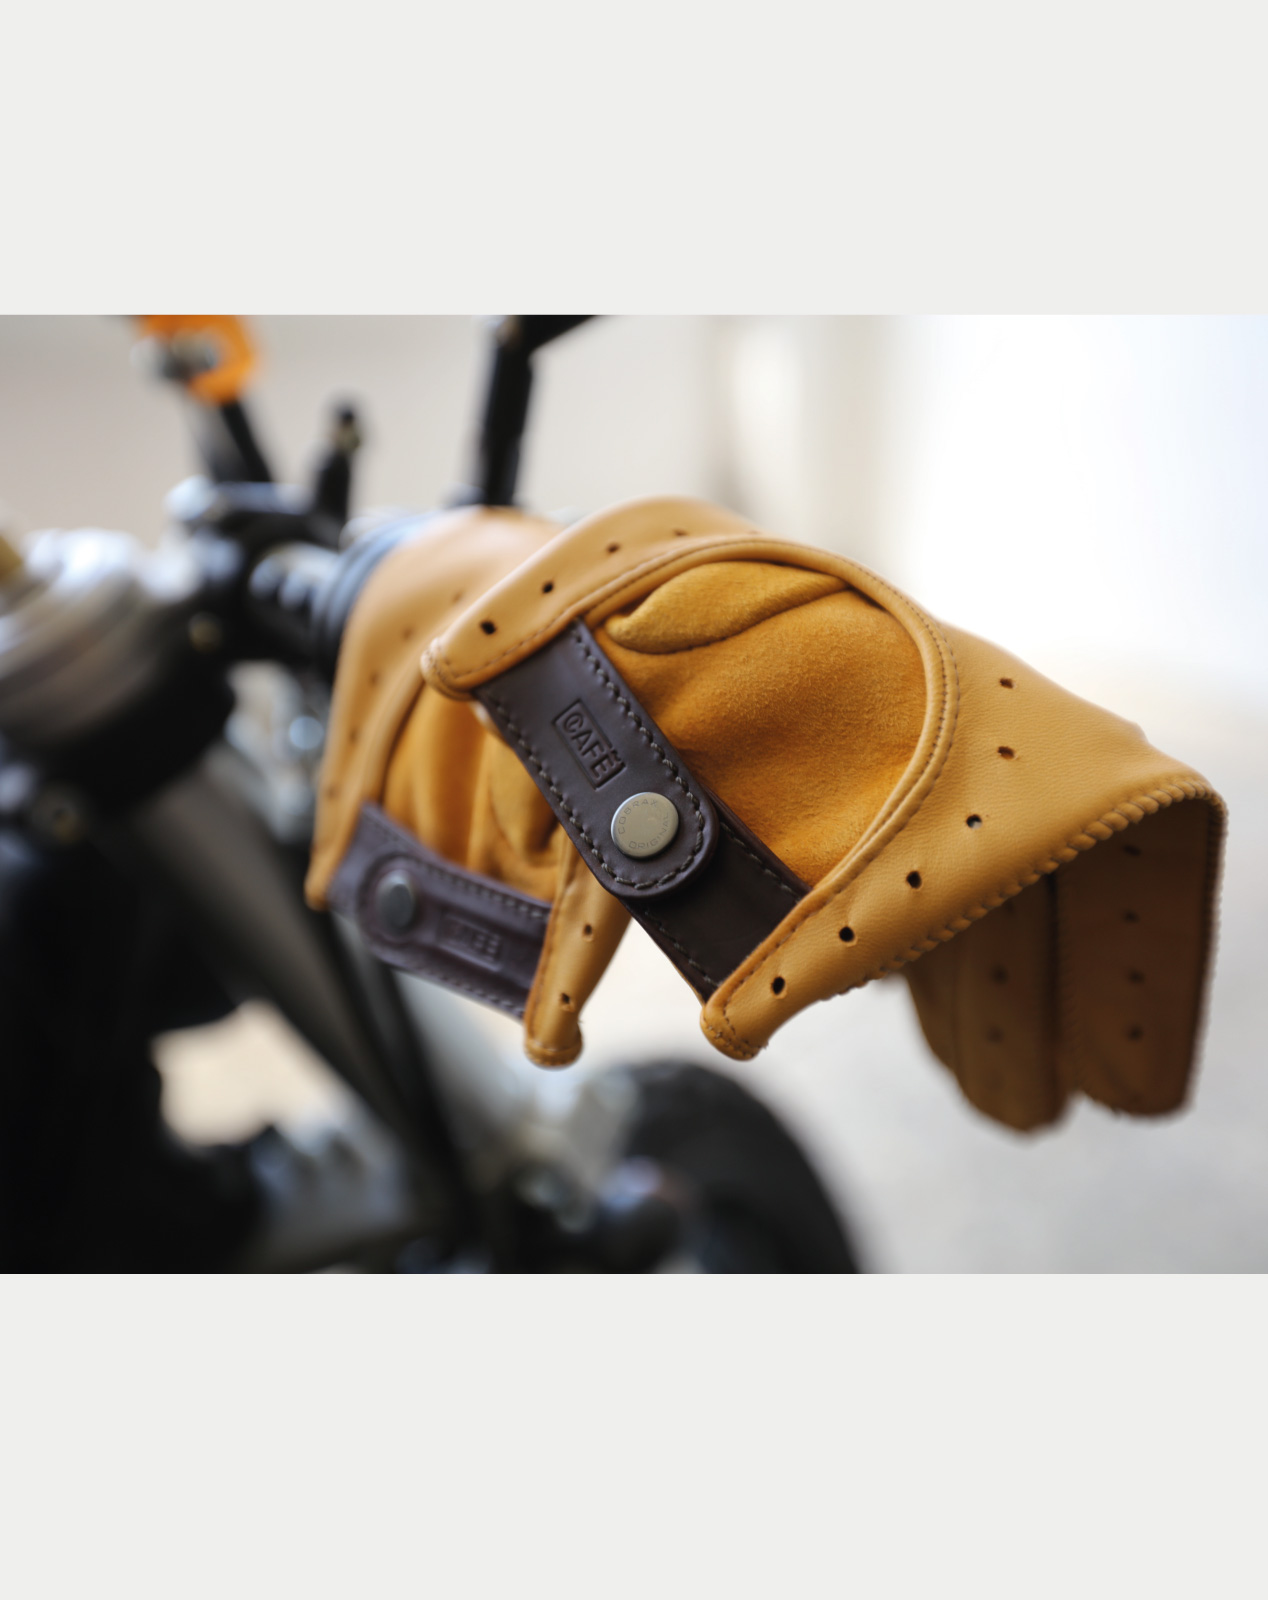 driving gloves handcrafted in Spain